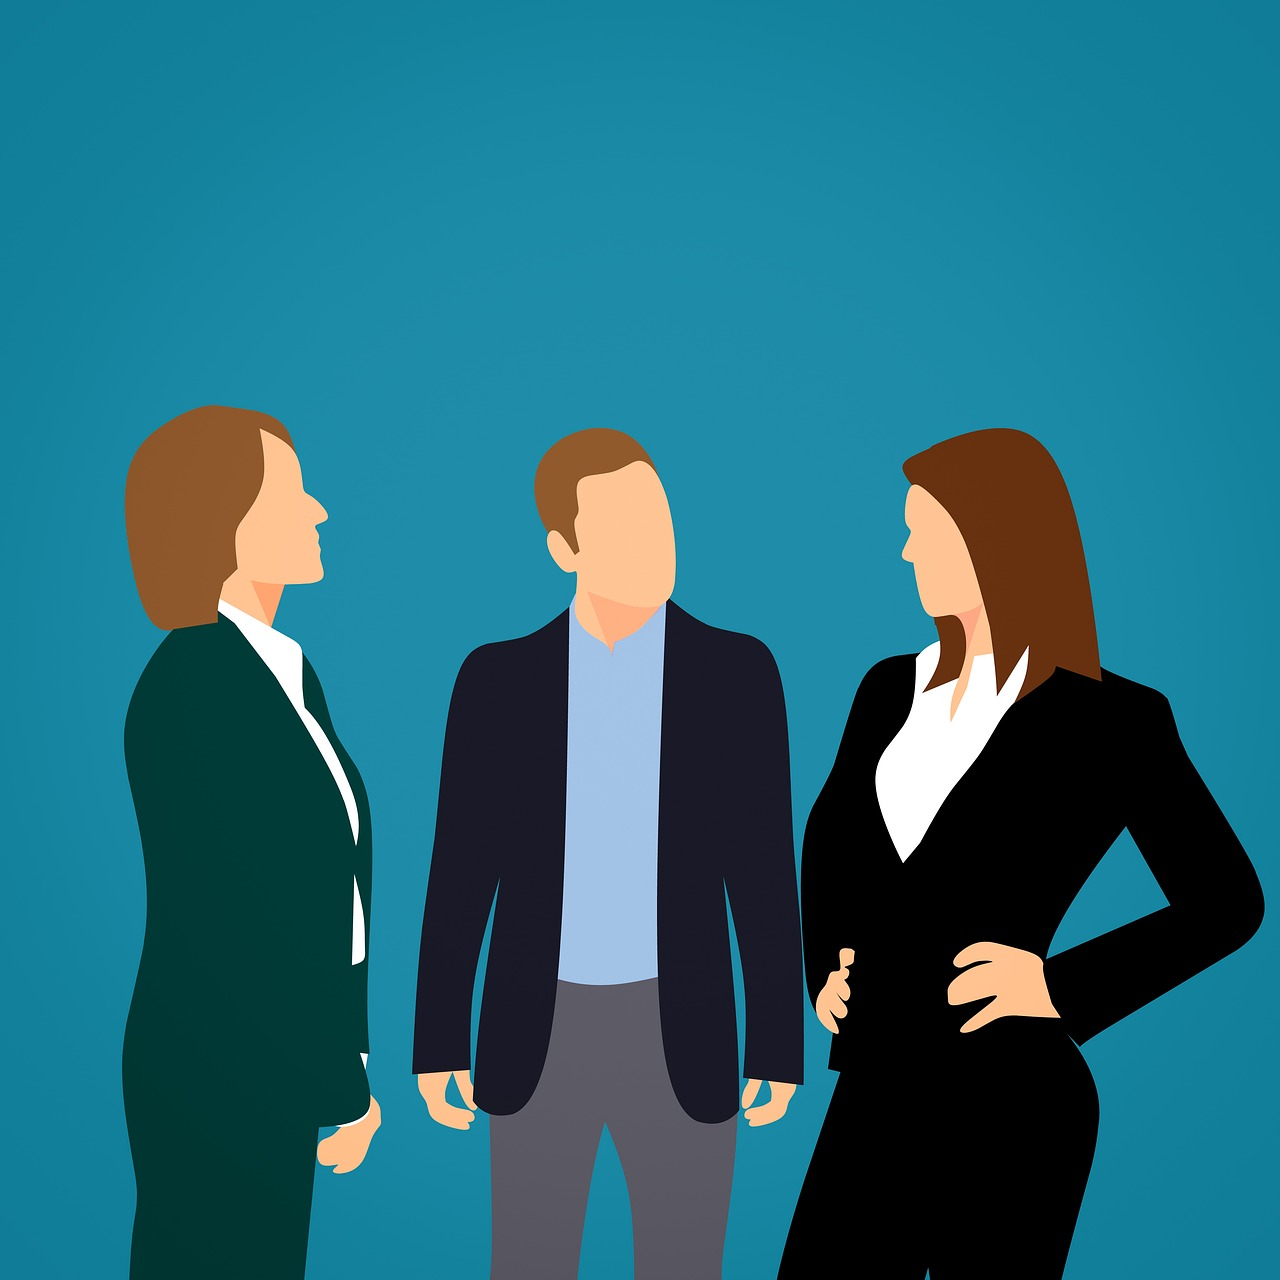 Two Businesswomen Separated By a Middleman